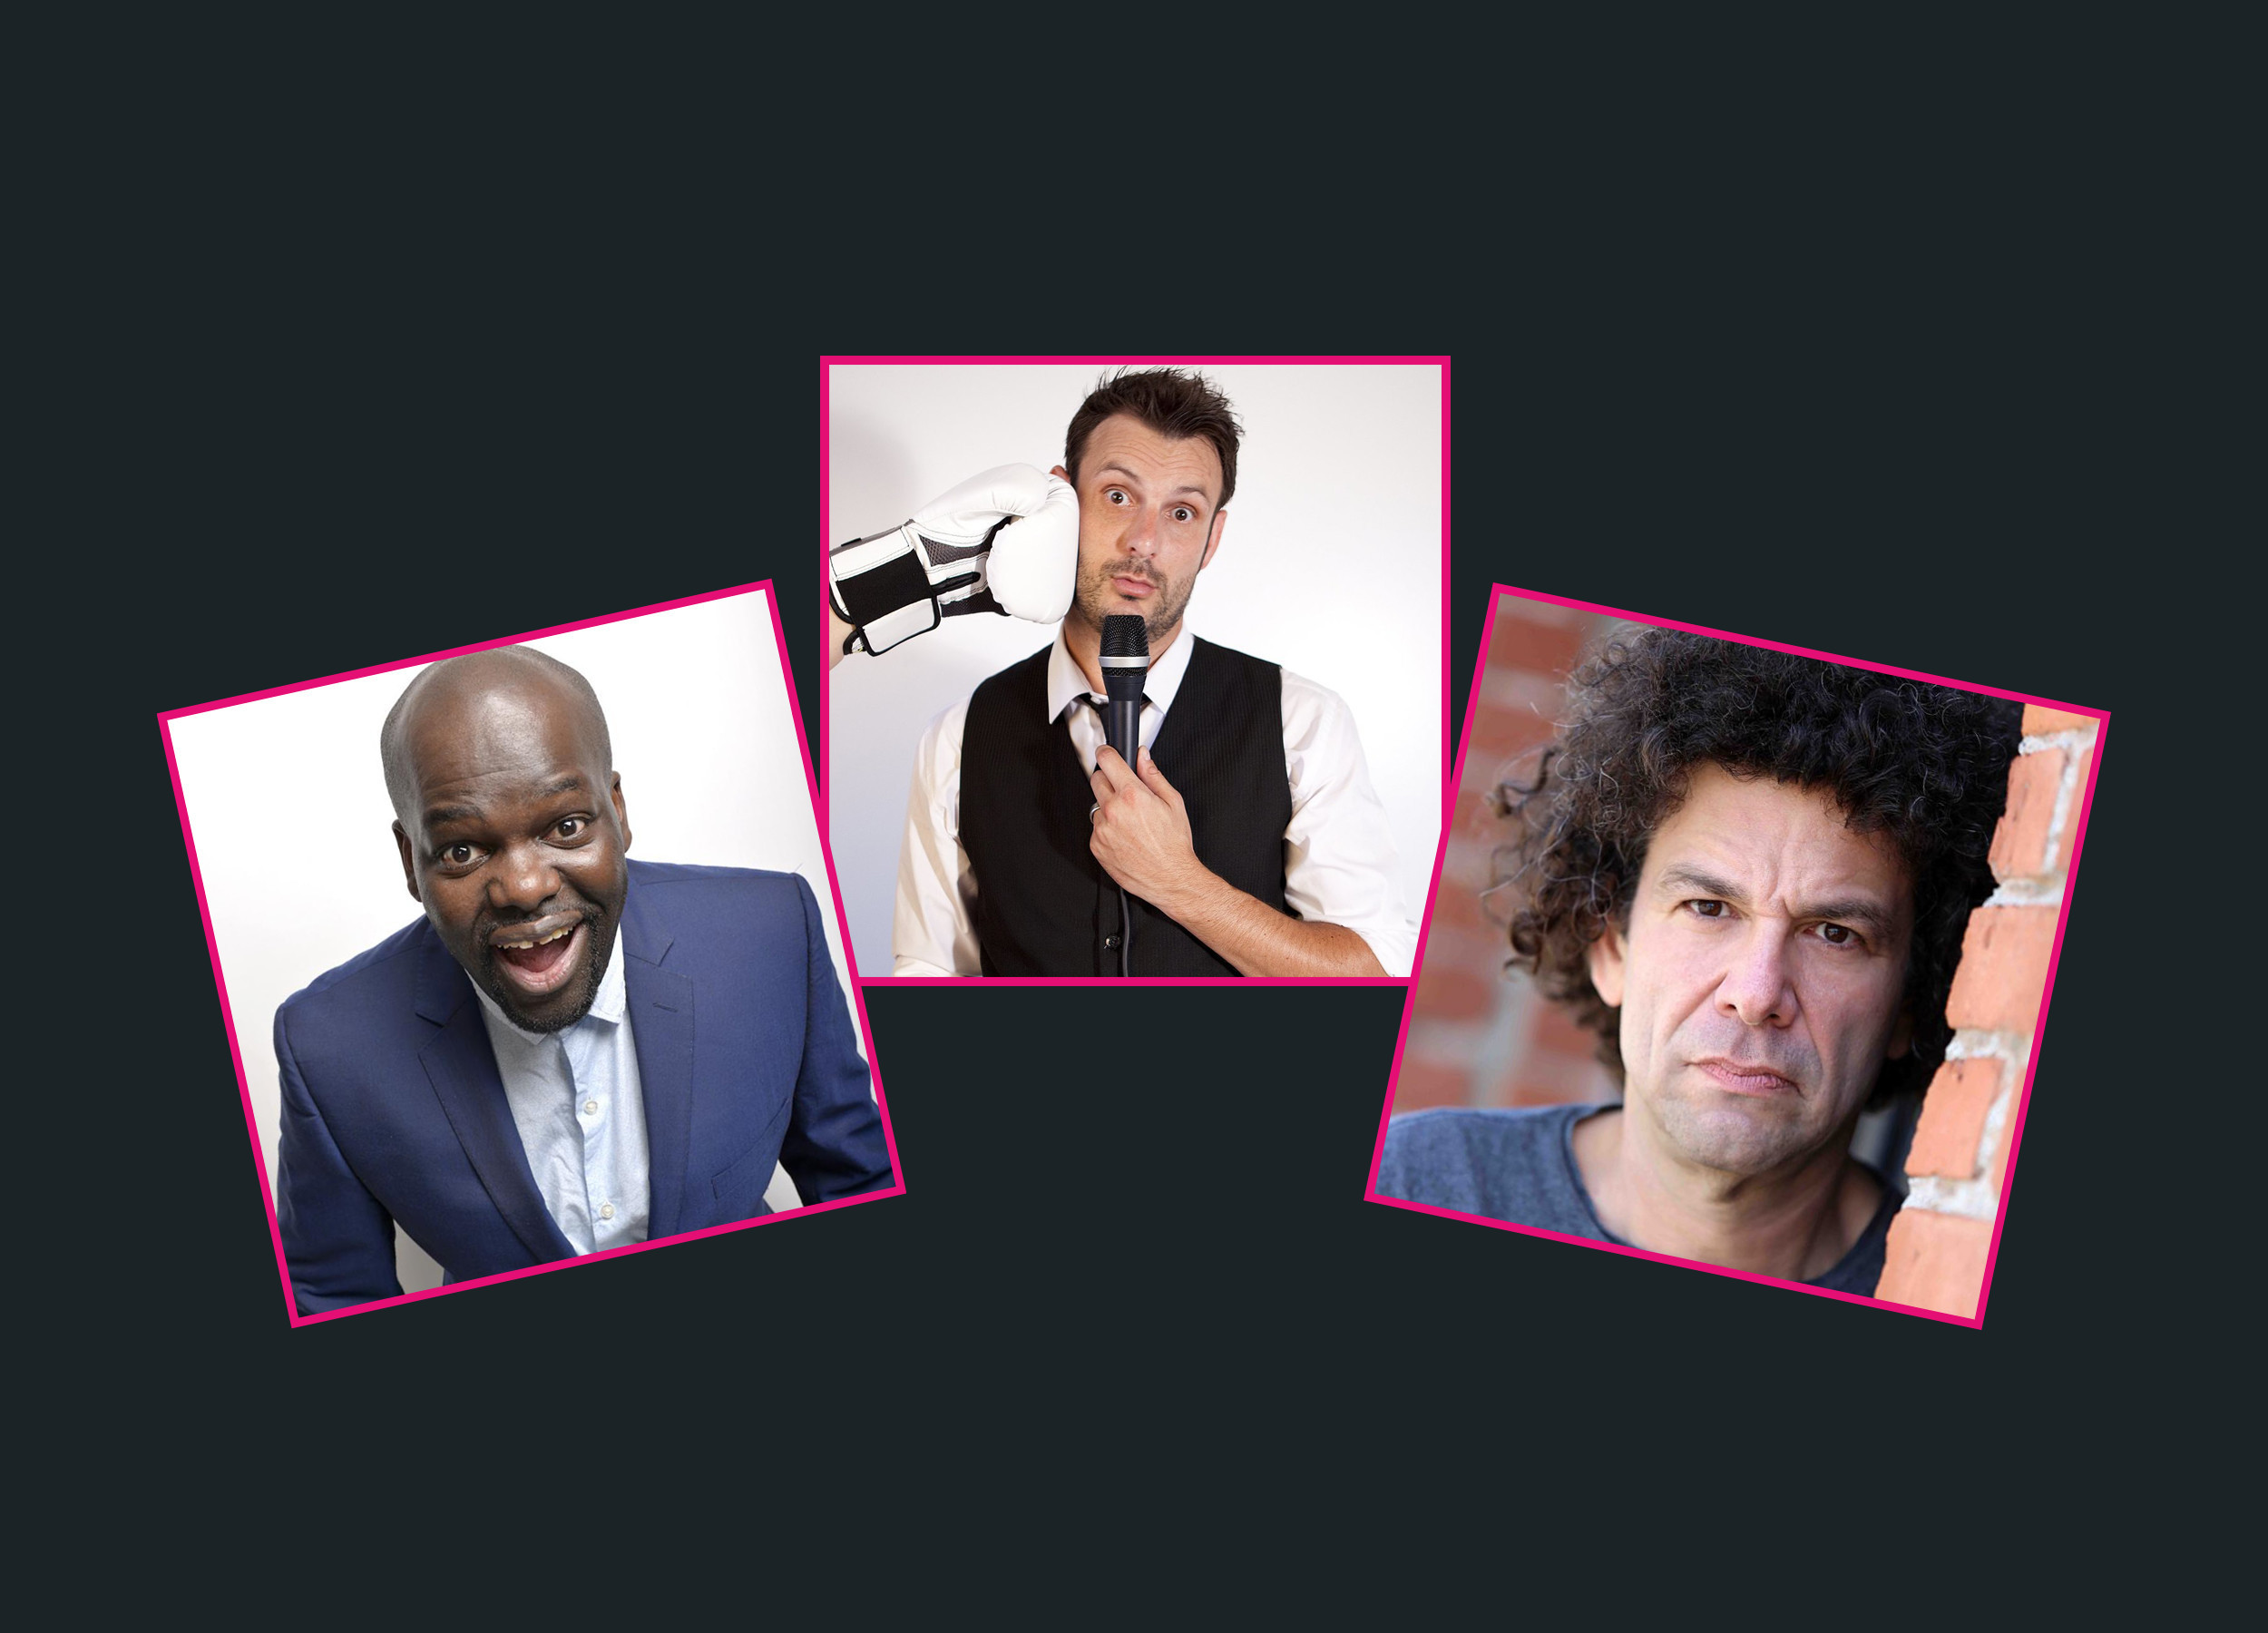 March clitheroe comedy club jokepit comedy tickets